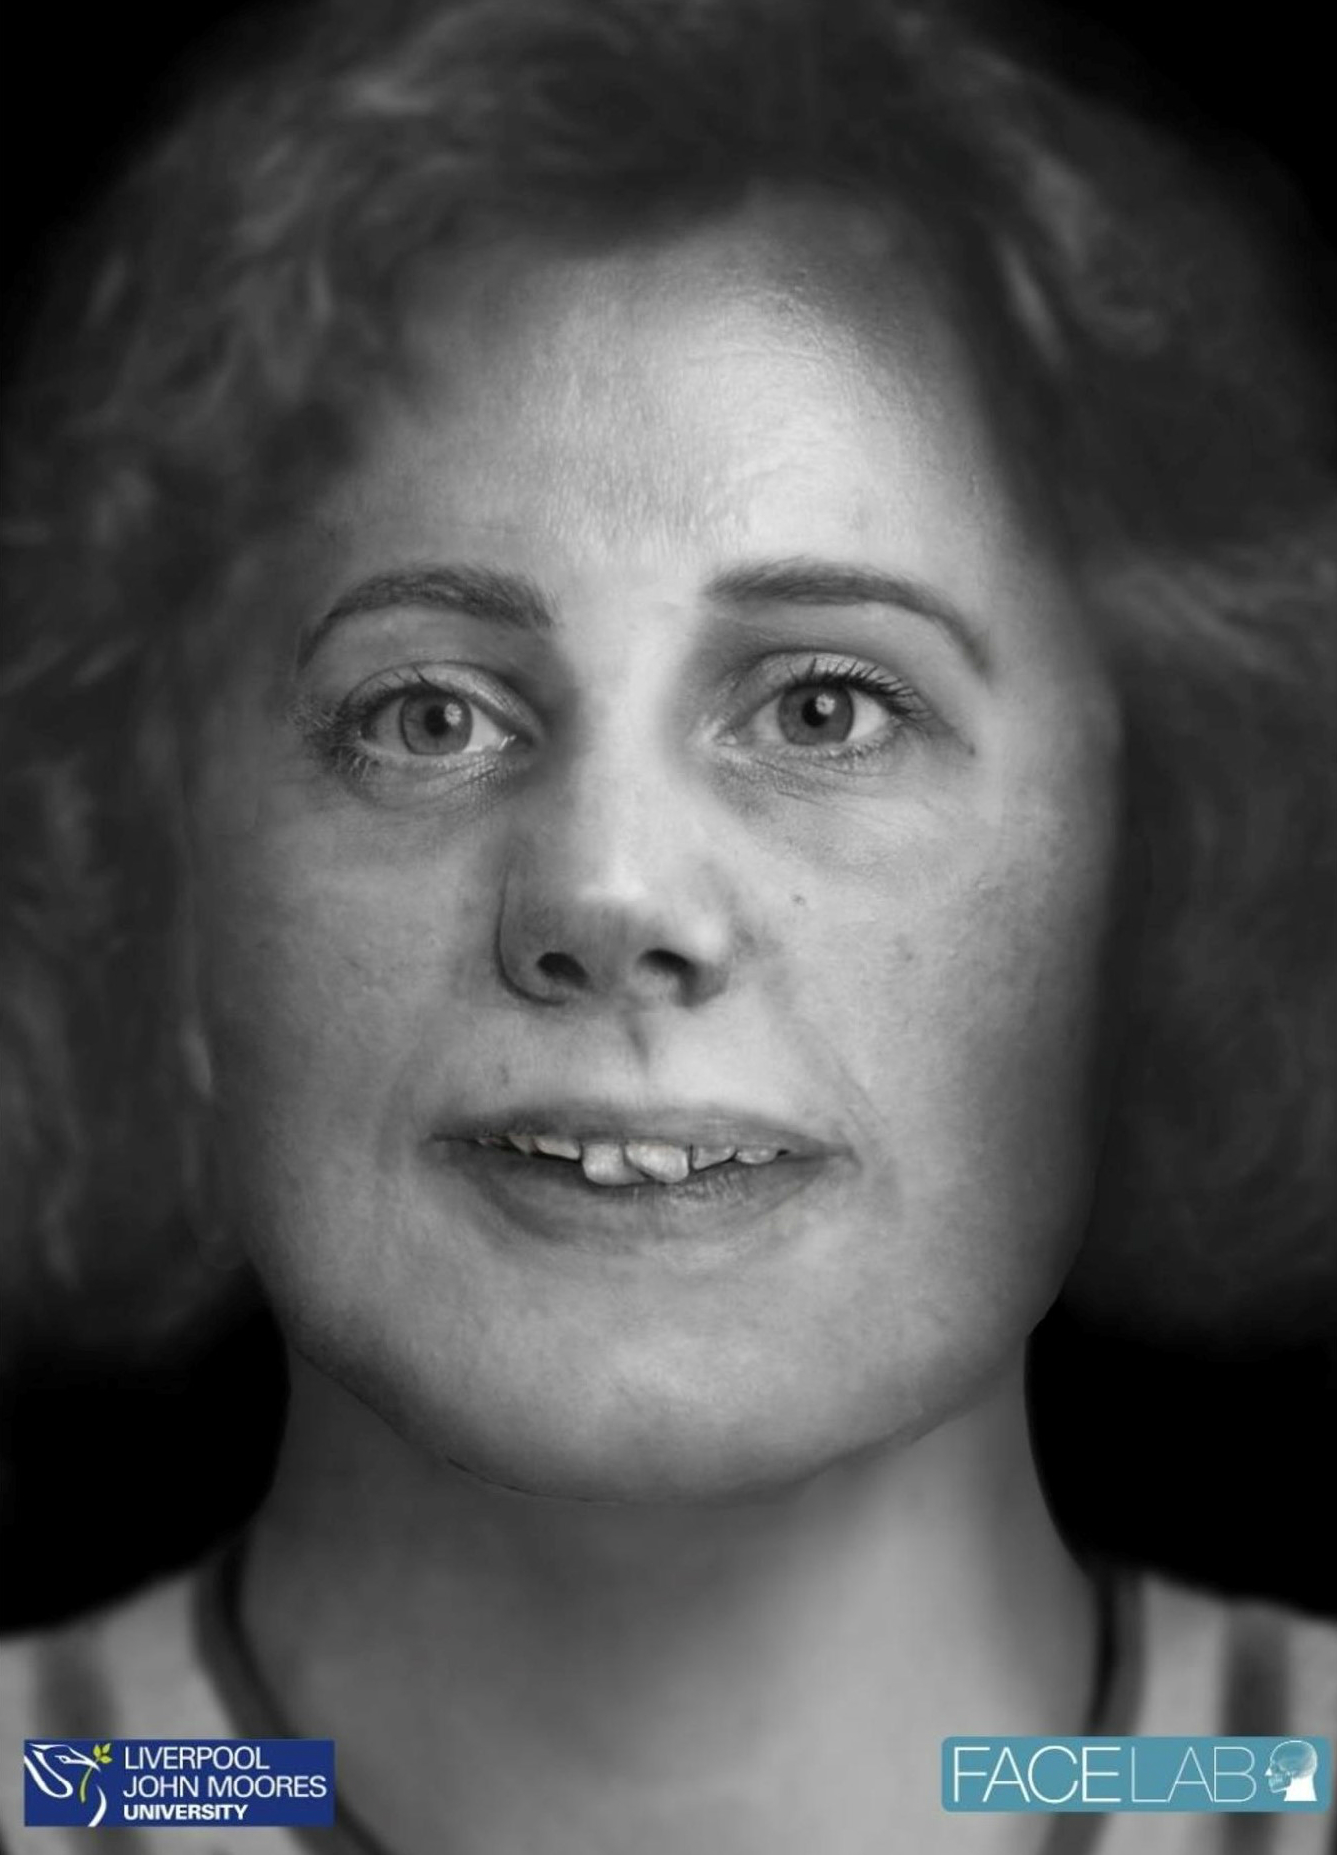 The face of Bella? Prof Caroline Wilkinson and Sarah Shrimpton from Face Lab / Liverpool John Moores University created a digital image of what Bella may have looked like using images of her skeletal remains. Pic courtesy of Pete Merrill / APS Books